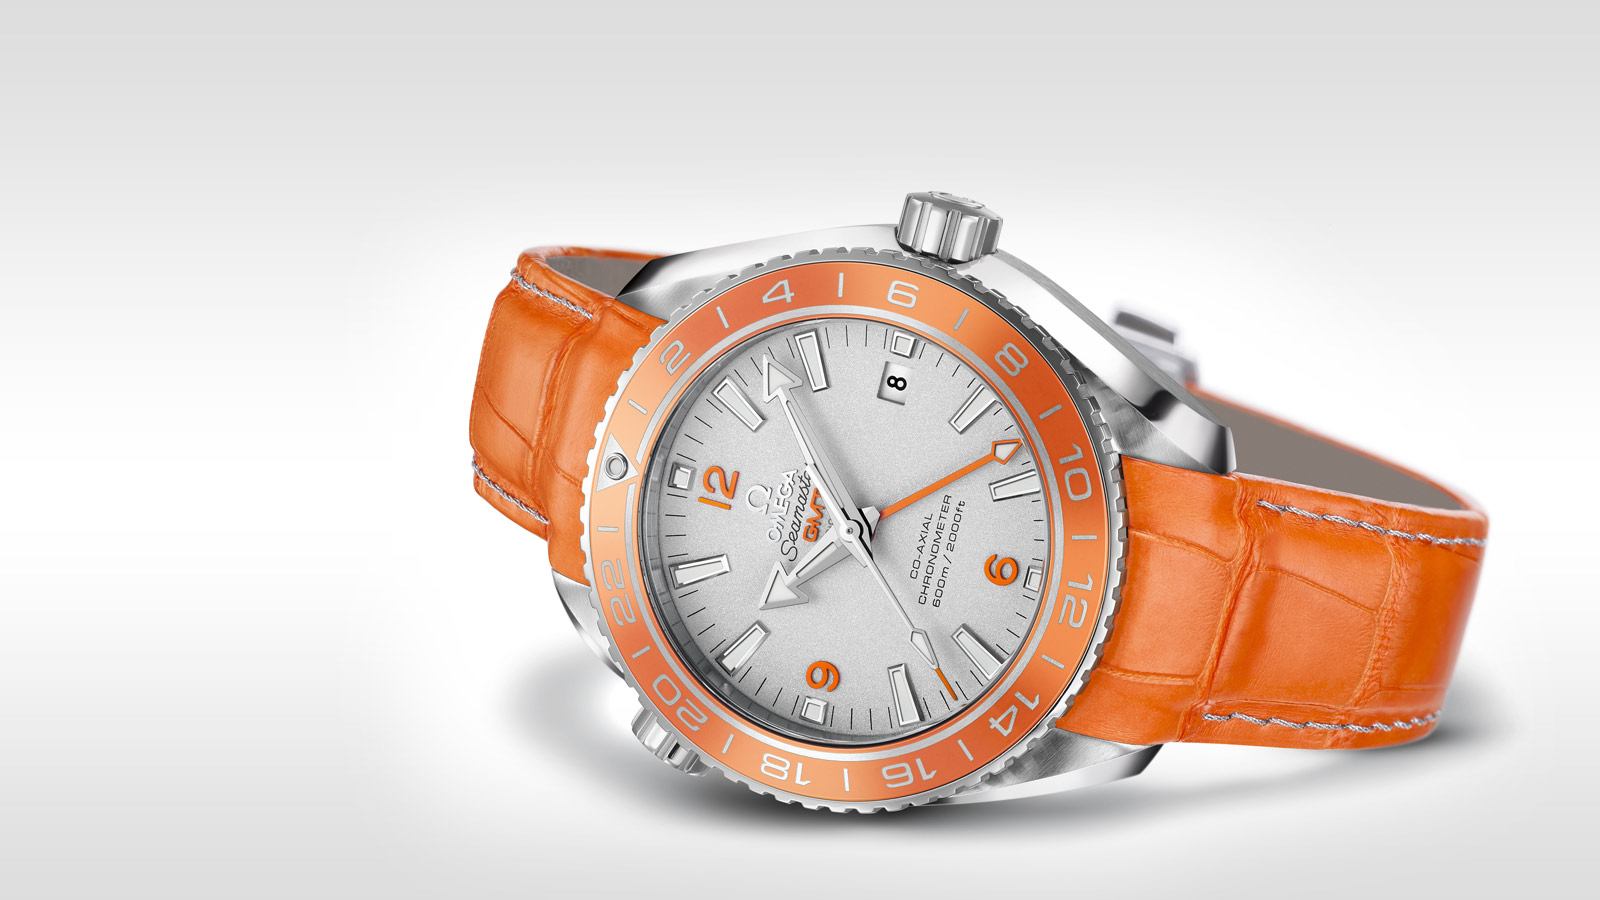 Seamaster Planet Ocean 600M Planet Ocean 600M Omega Co‑axial GMT 43.5mm - 232.93.44.22.99.001 - View 1